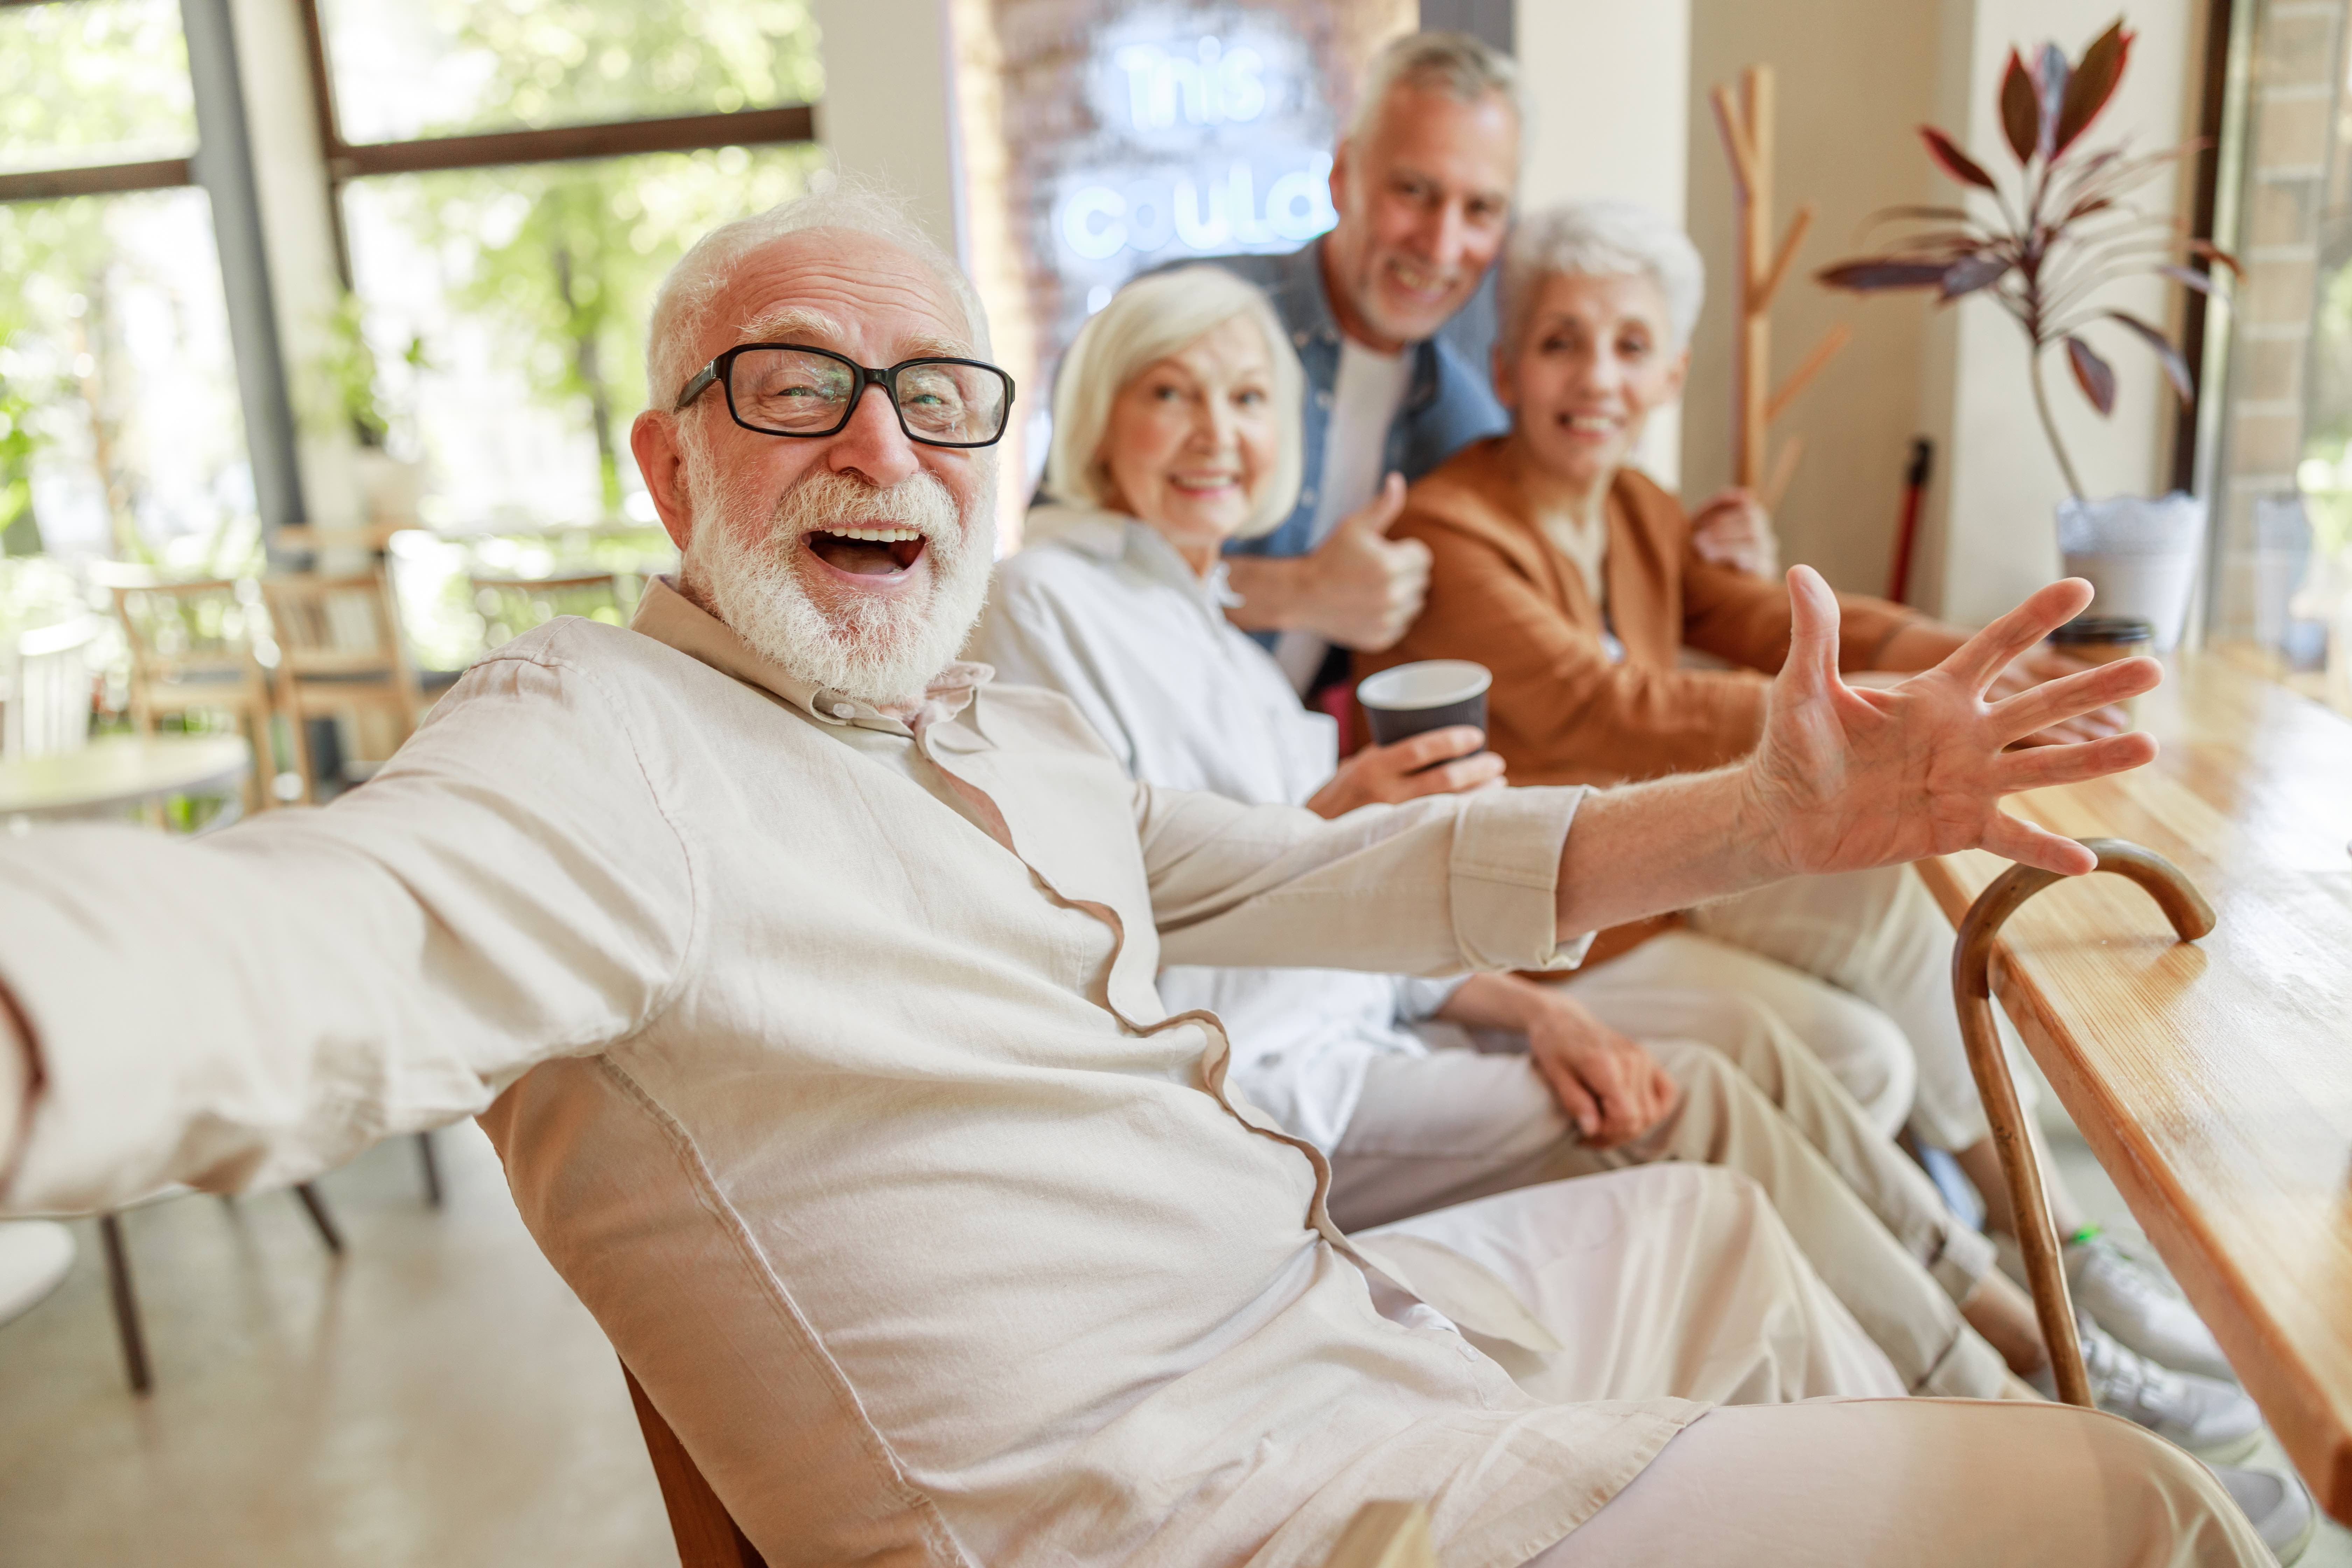 It's  exciting  to  reimagine  our  future  and  find new  meaning  and  purpose  in  our  later  years in  this  era  of  increased  longevity. (Olena Yakobchuk/Shutterstock)